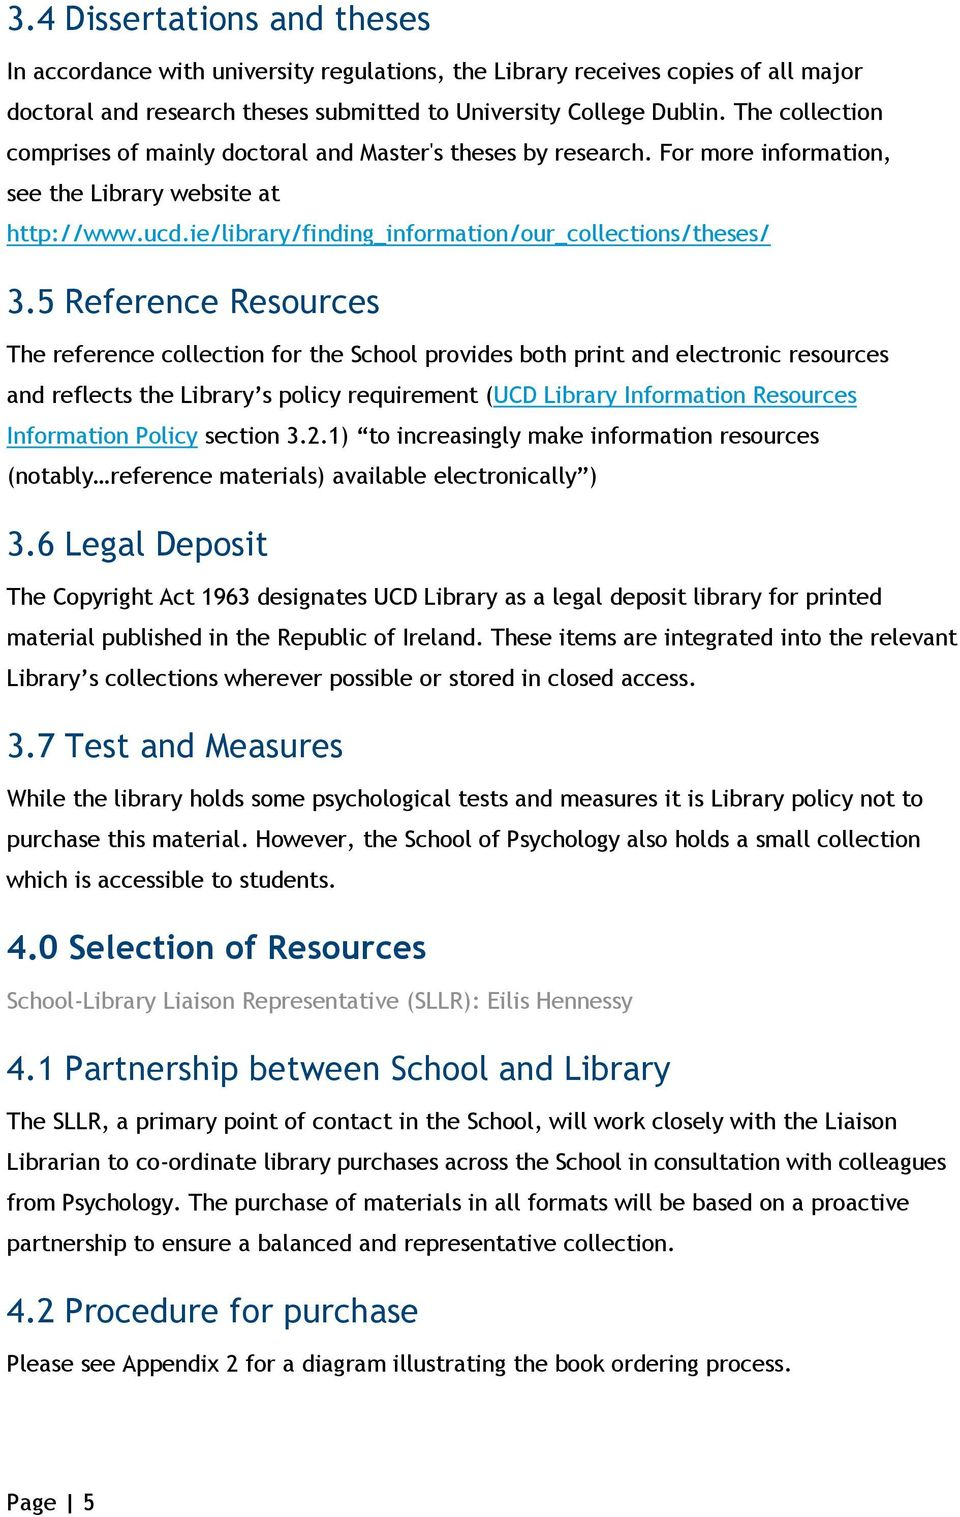 5 Reference Resources The reference collection for the School provides both print and electronic resources and reflects the Library s policy requirement (UCD Library Information Resources Information